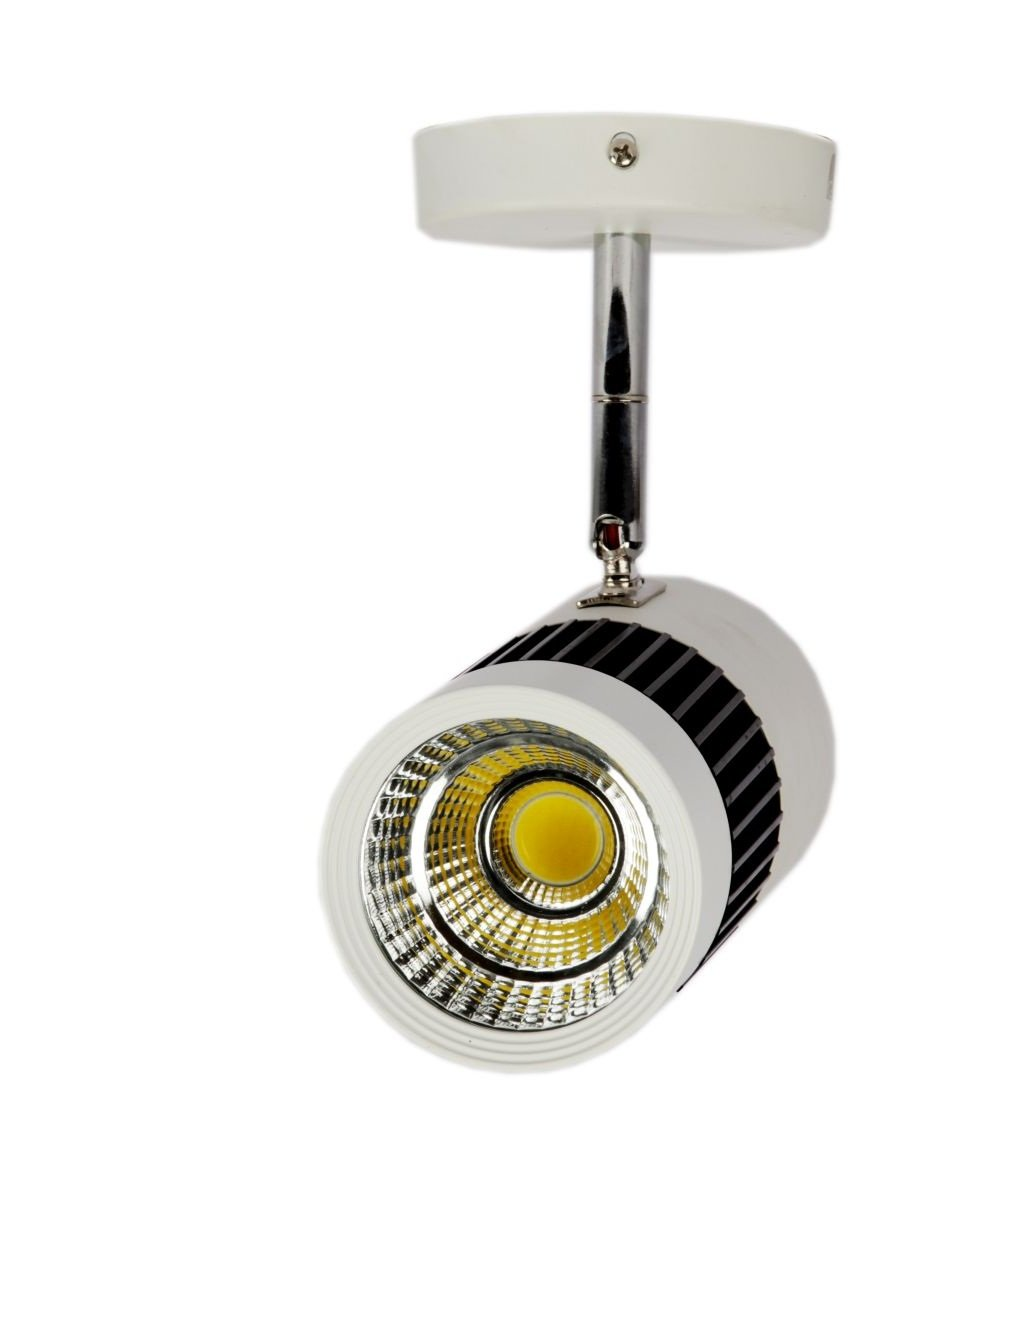 Glitz Led Spot Light 6W Warm White. 2700K, Finest Quality, Bright Light, With 1 Year Warranty